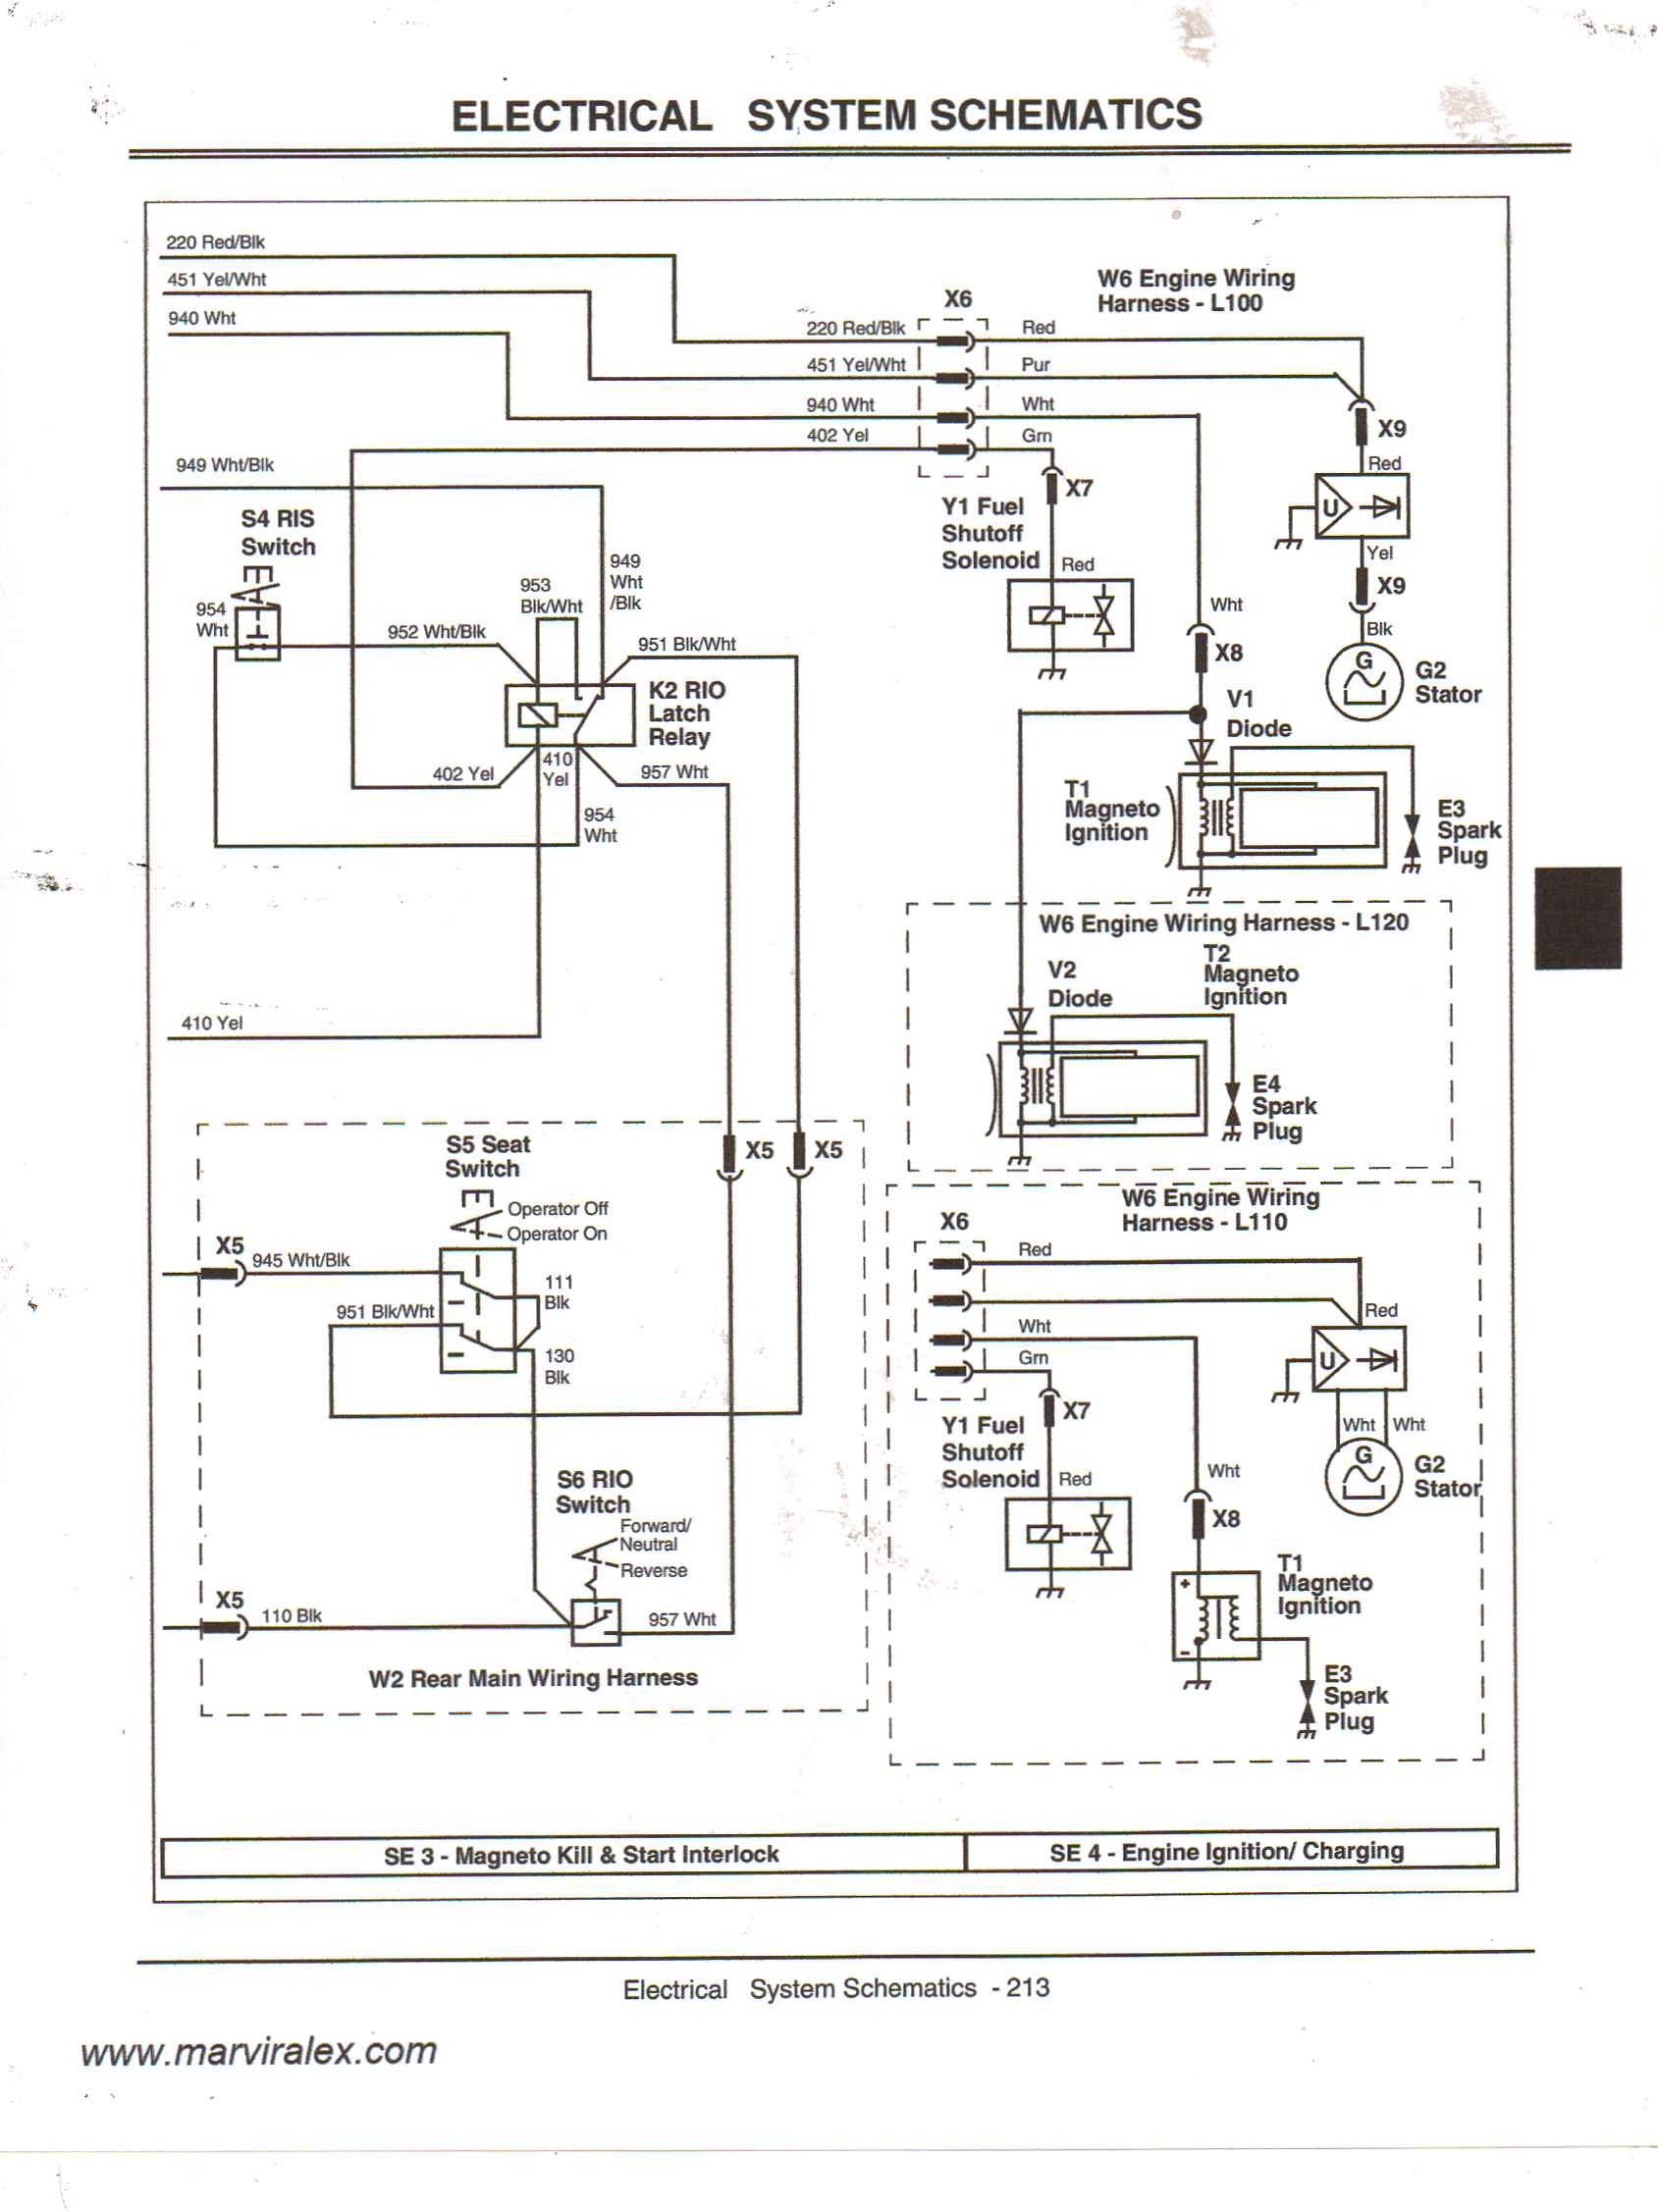 John Deere 4020 Wiring Diagram Ww 1570] for John Deere 1050 Tractor Wiring Diagram Free Diagram Of John Deere 4020 Wiring Diagram